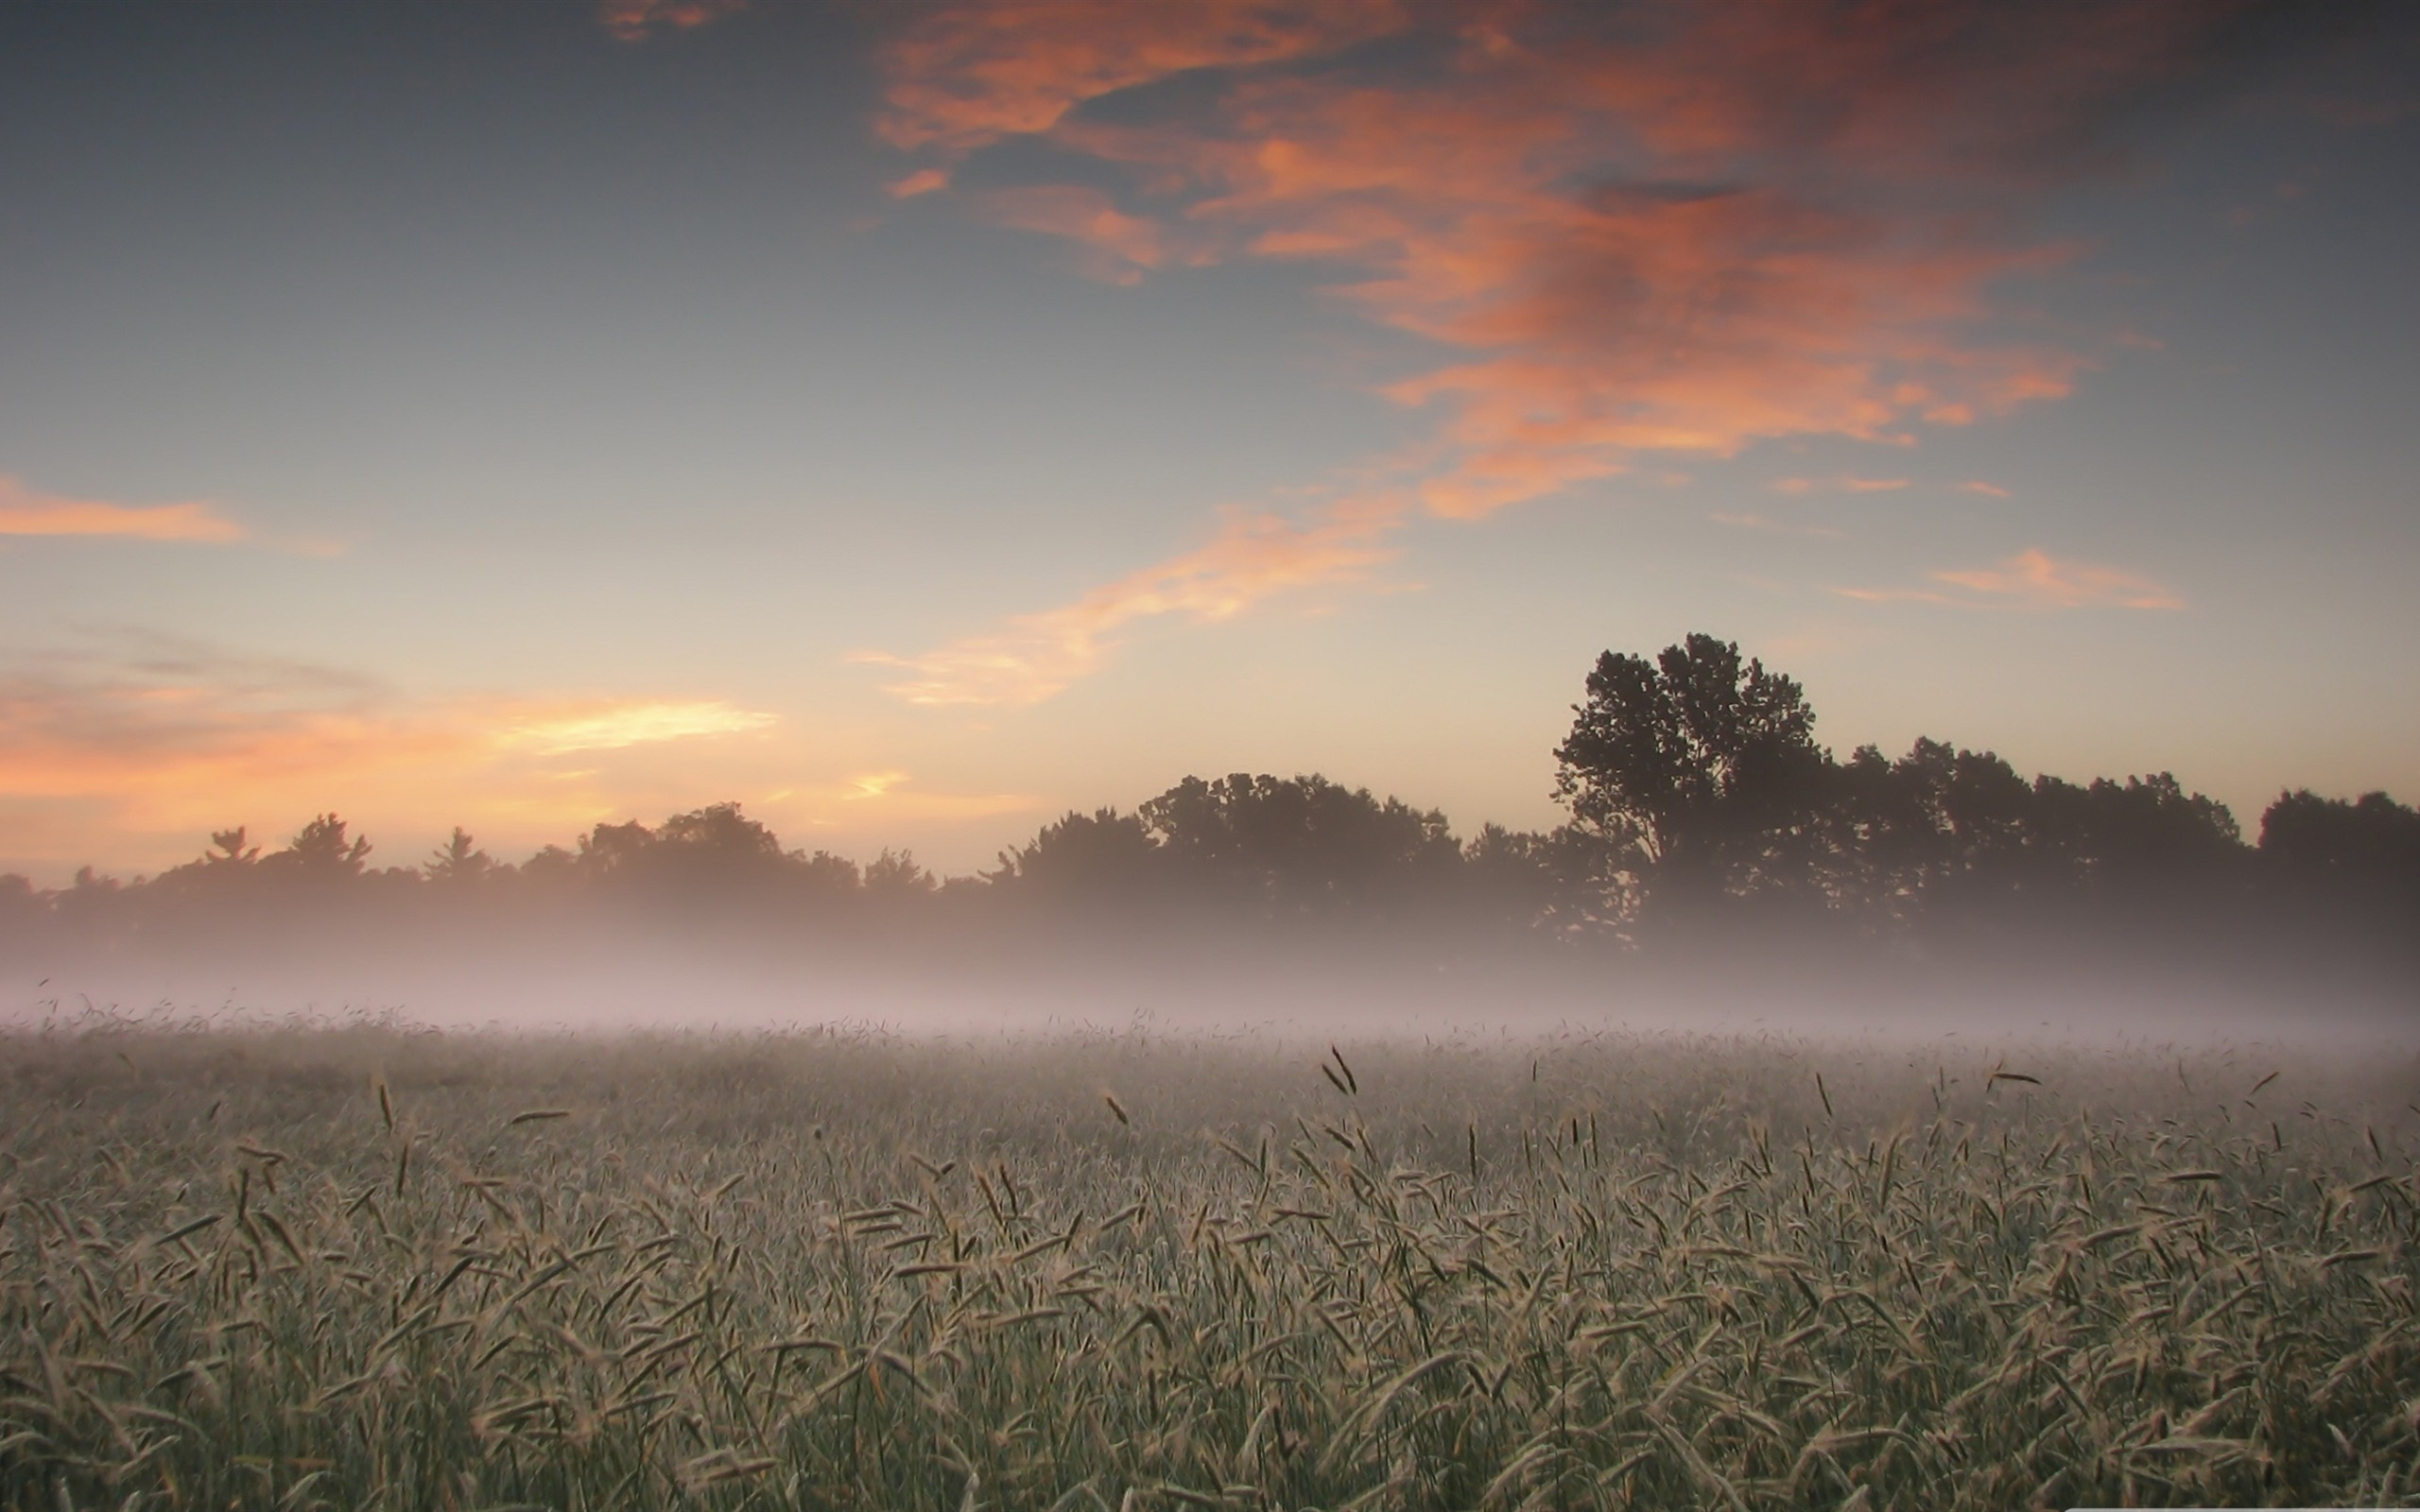 Early morning mist beautiful natural scenery wallpaper